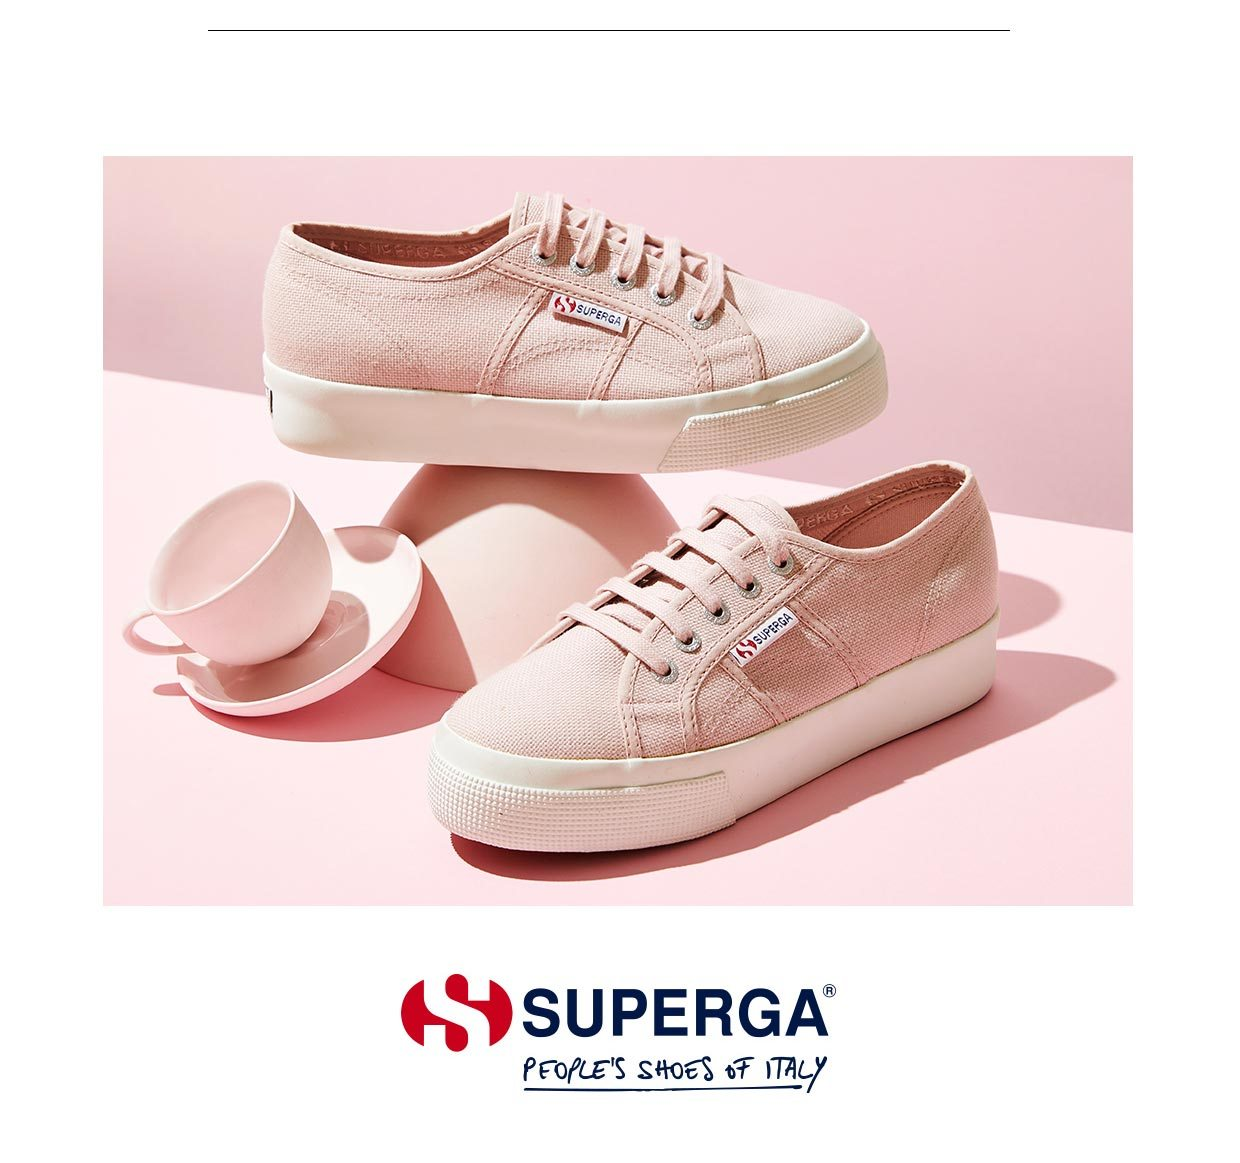 SHOP SUPERGA